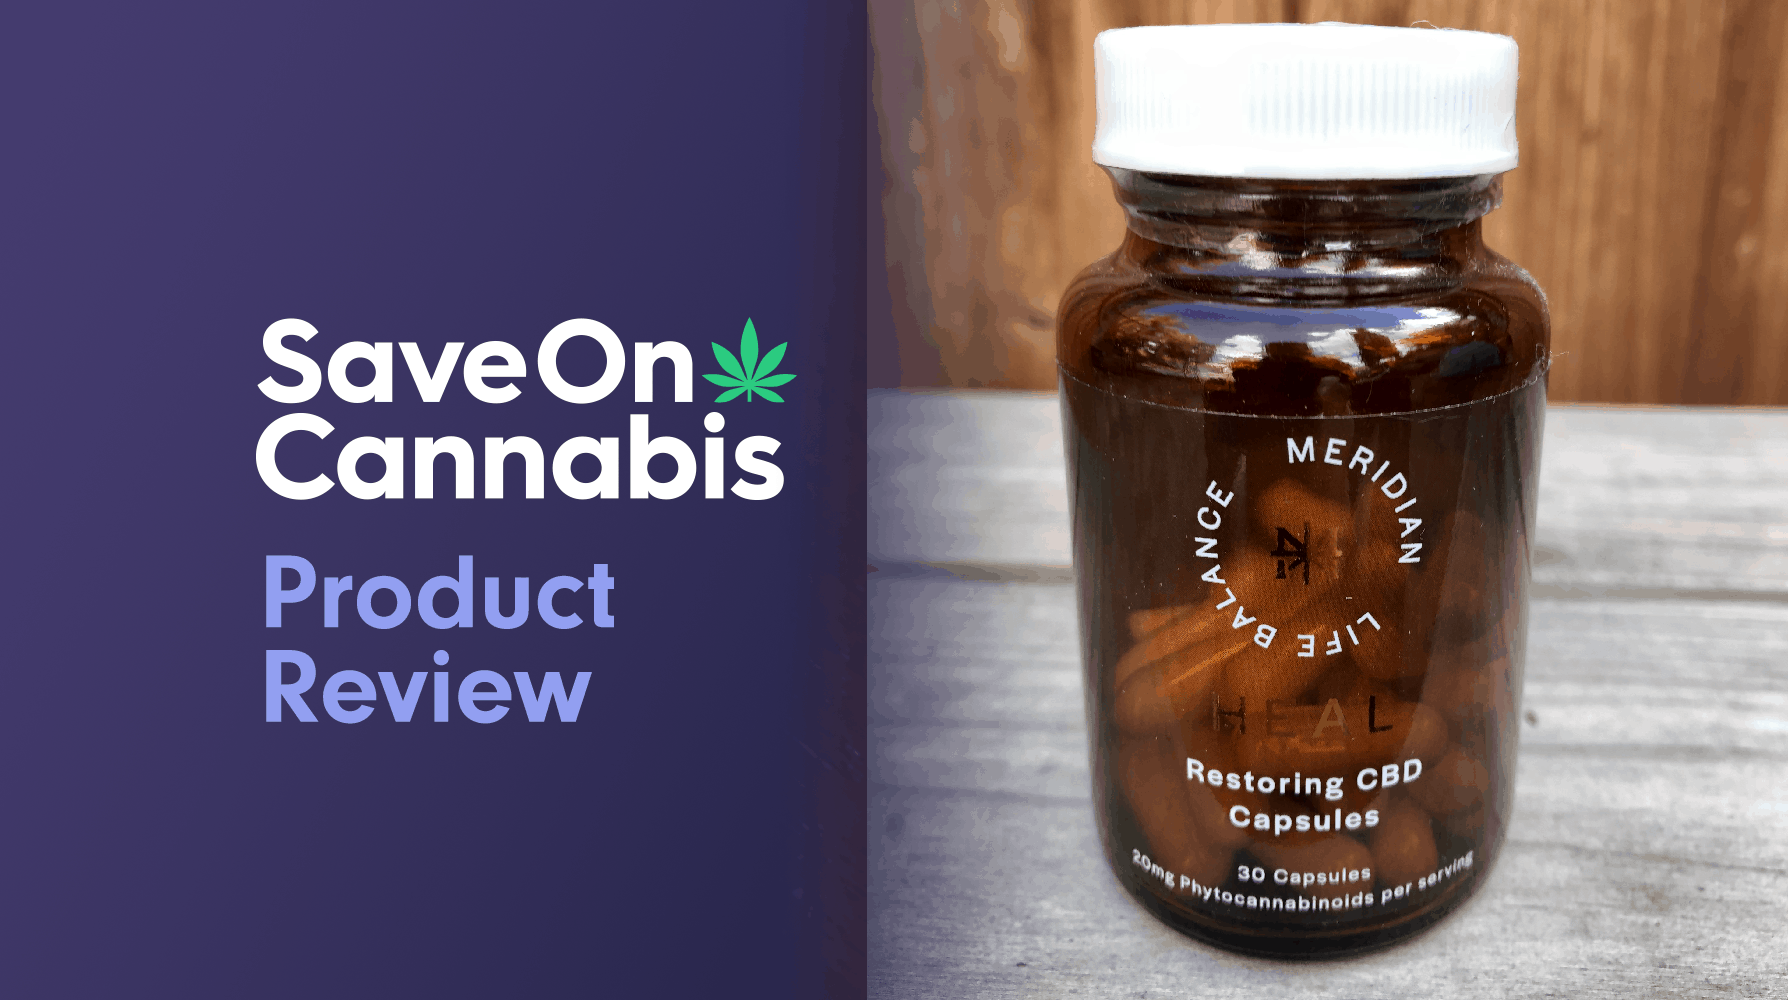 meridian life balance restoring cbd capsules save on cannabis Website